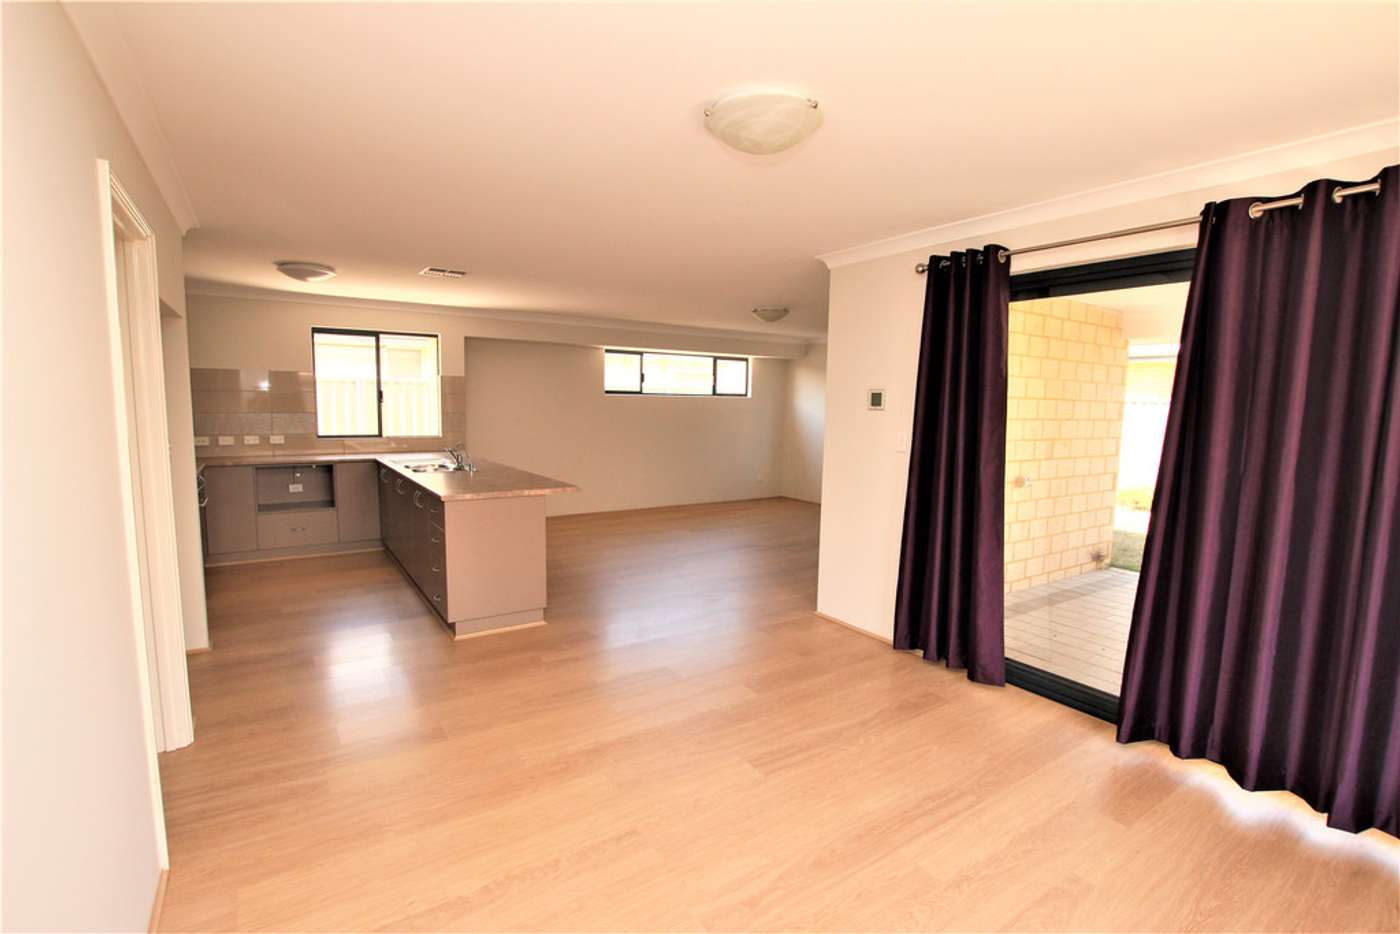 Seventh view of Homely house listing, 19 Barron Turn, South Yunderup WA 6208